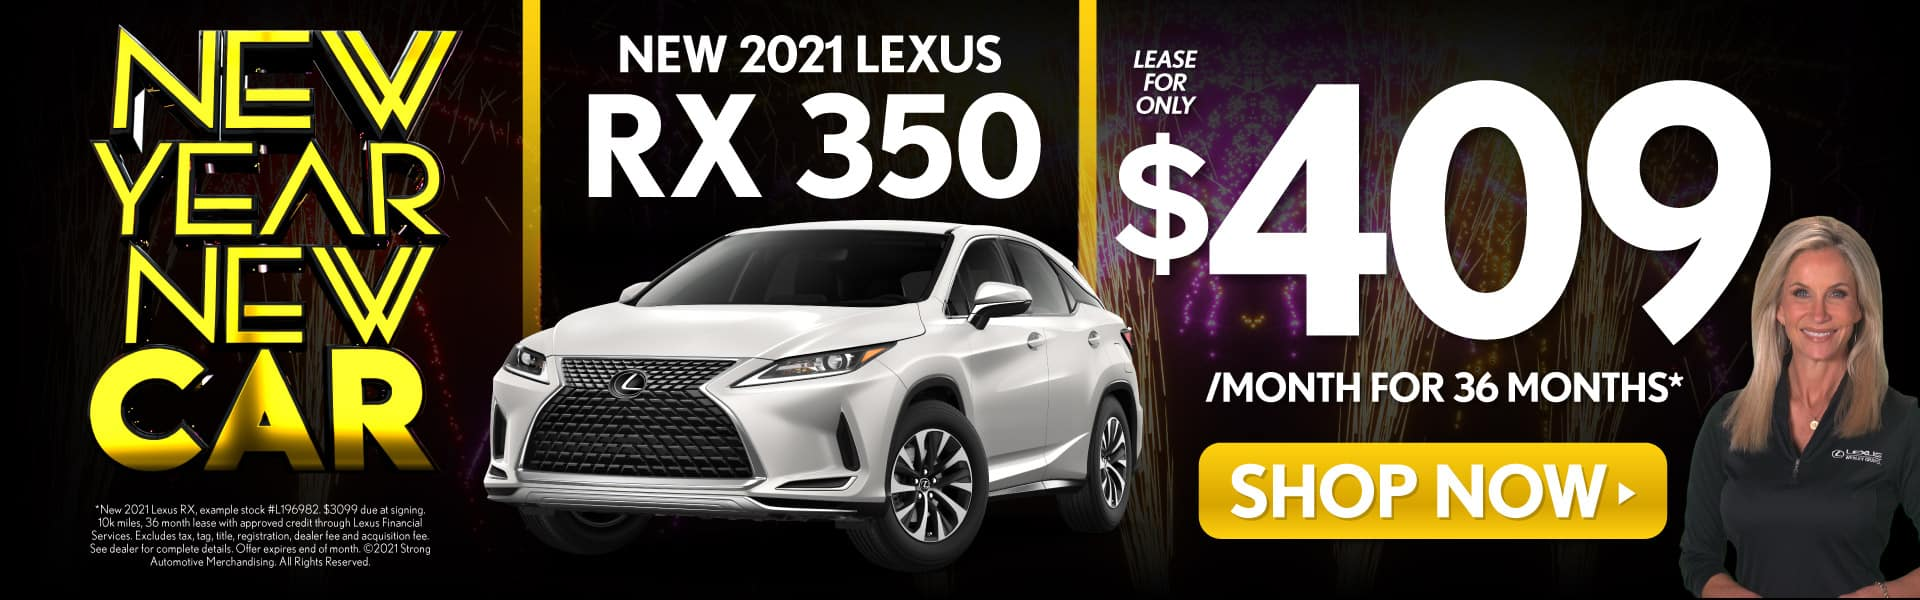 New 2021 Lexus RX 350 | Lease for Only $409 a month | Shop Now